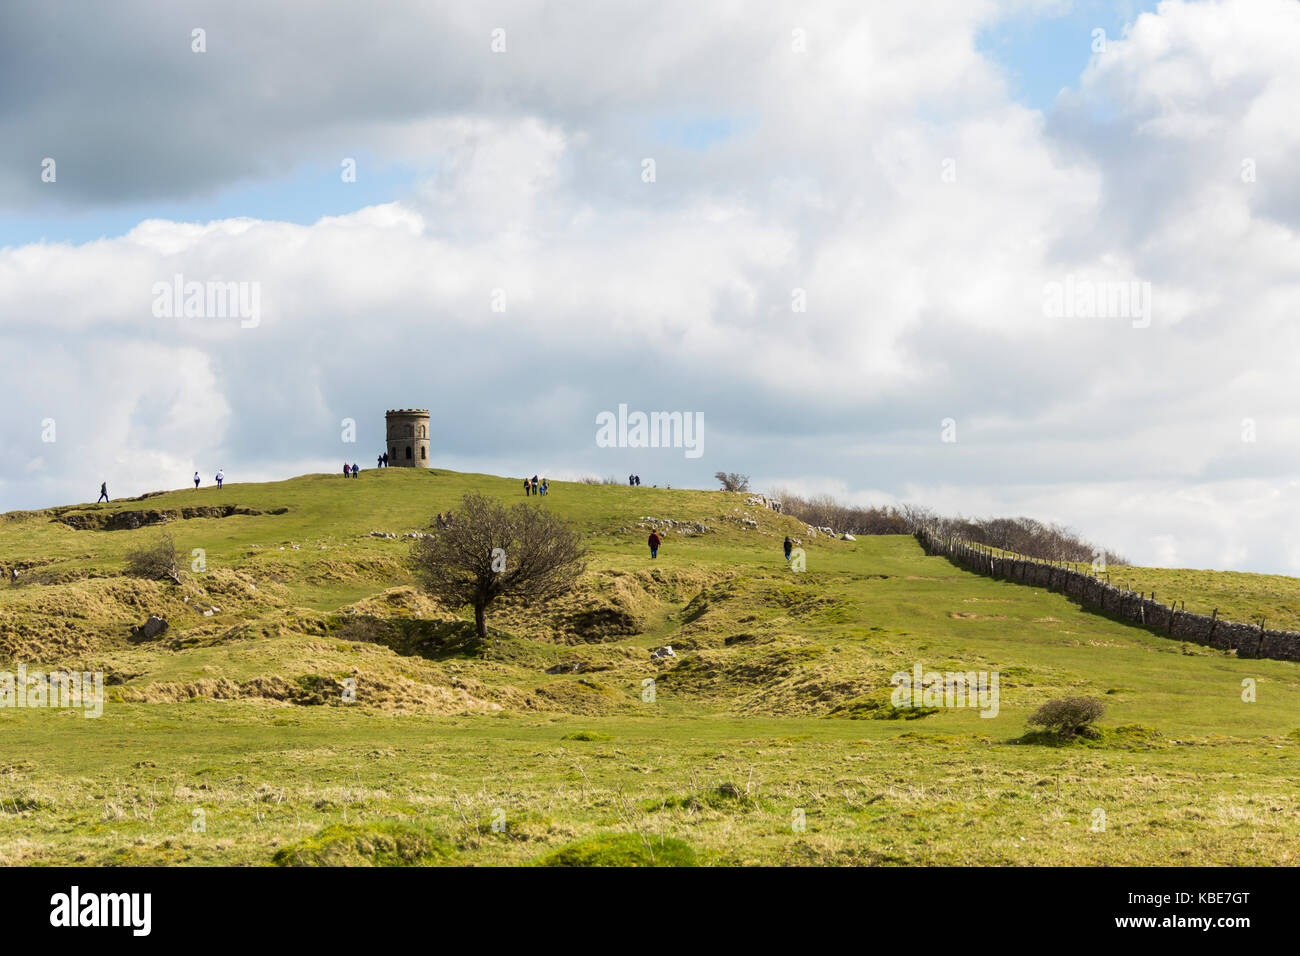 Buxton, UK. 2nd April 2017. Visitors in and around the Victorian folly tower known as Solomon's Temple on Grin - Stock Image